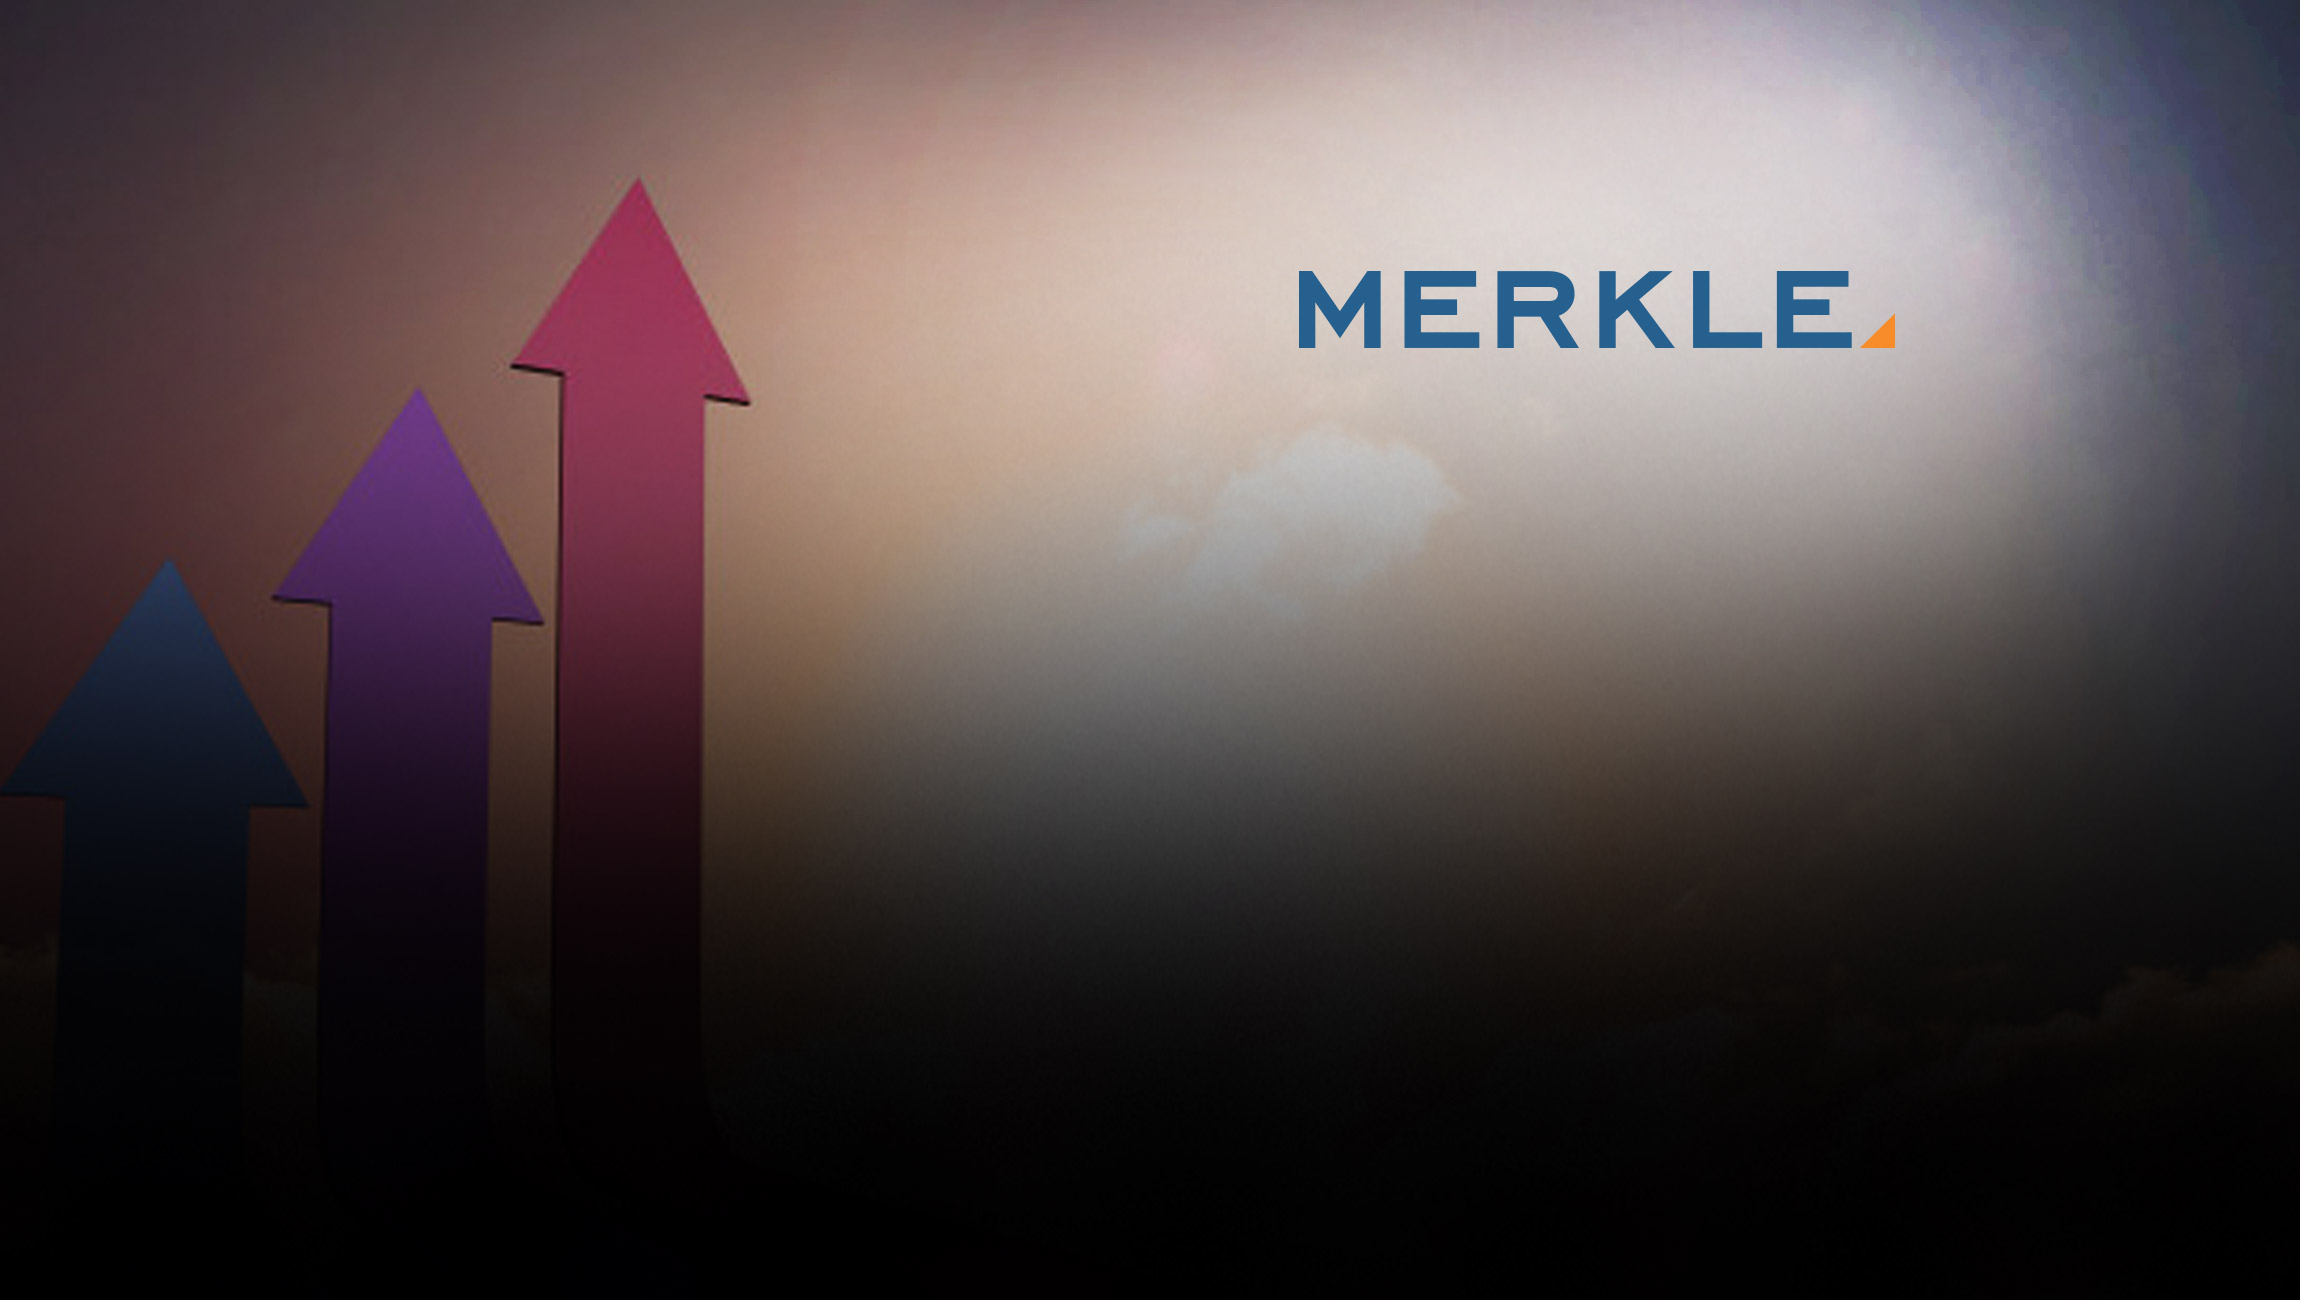 Merkle's Q3 2020 Digital Marketing Report Shows Strong Growth in E-commerce and Retail, While Sectors like Travel and Financial Services Remain Down Y/Y